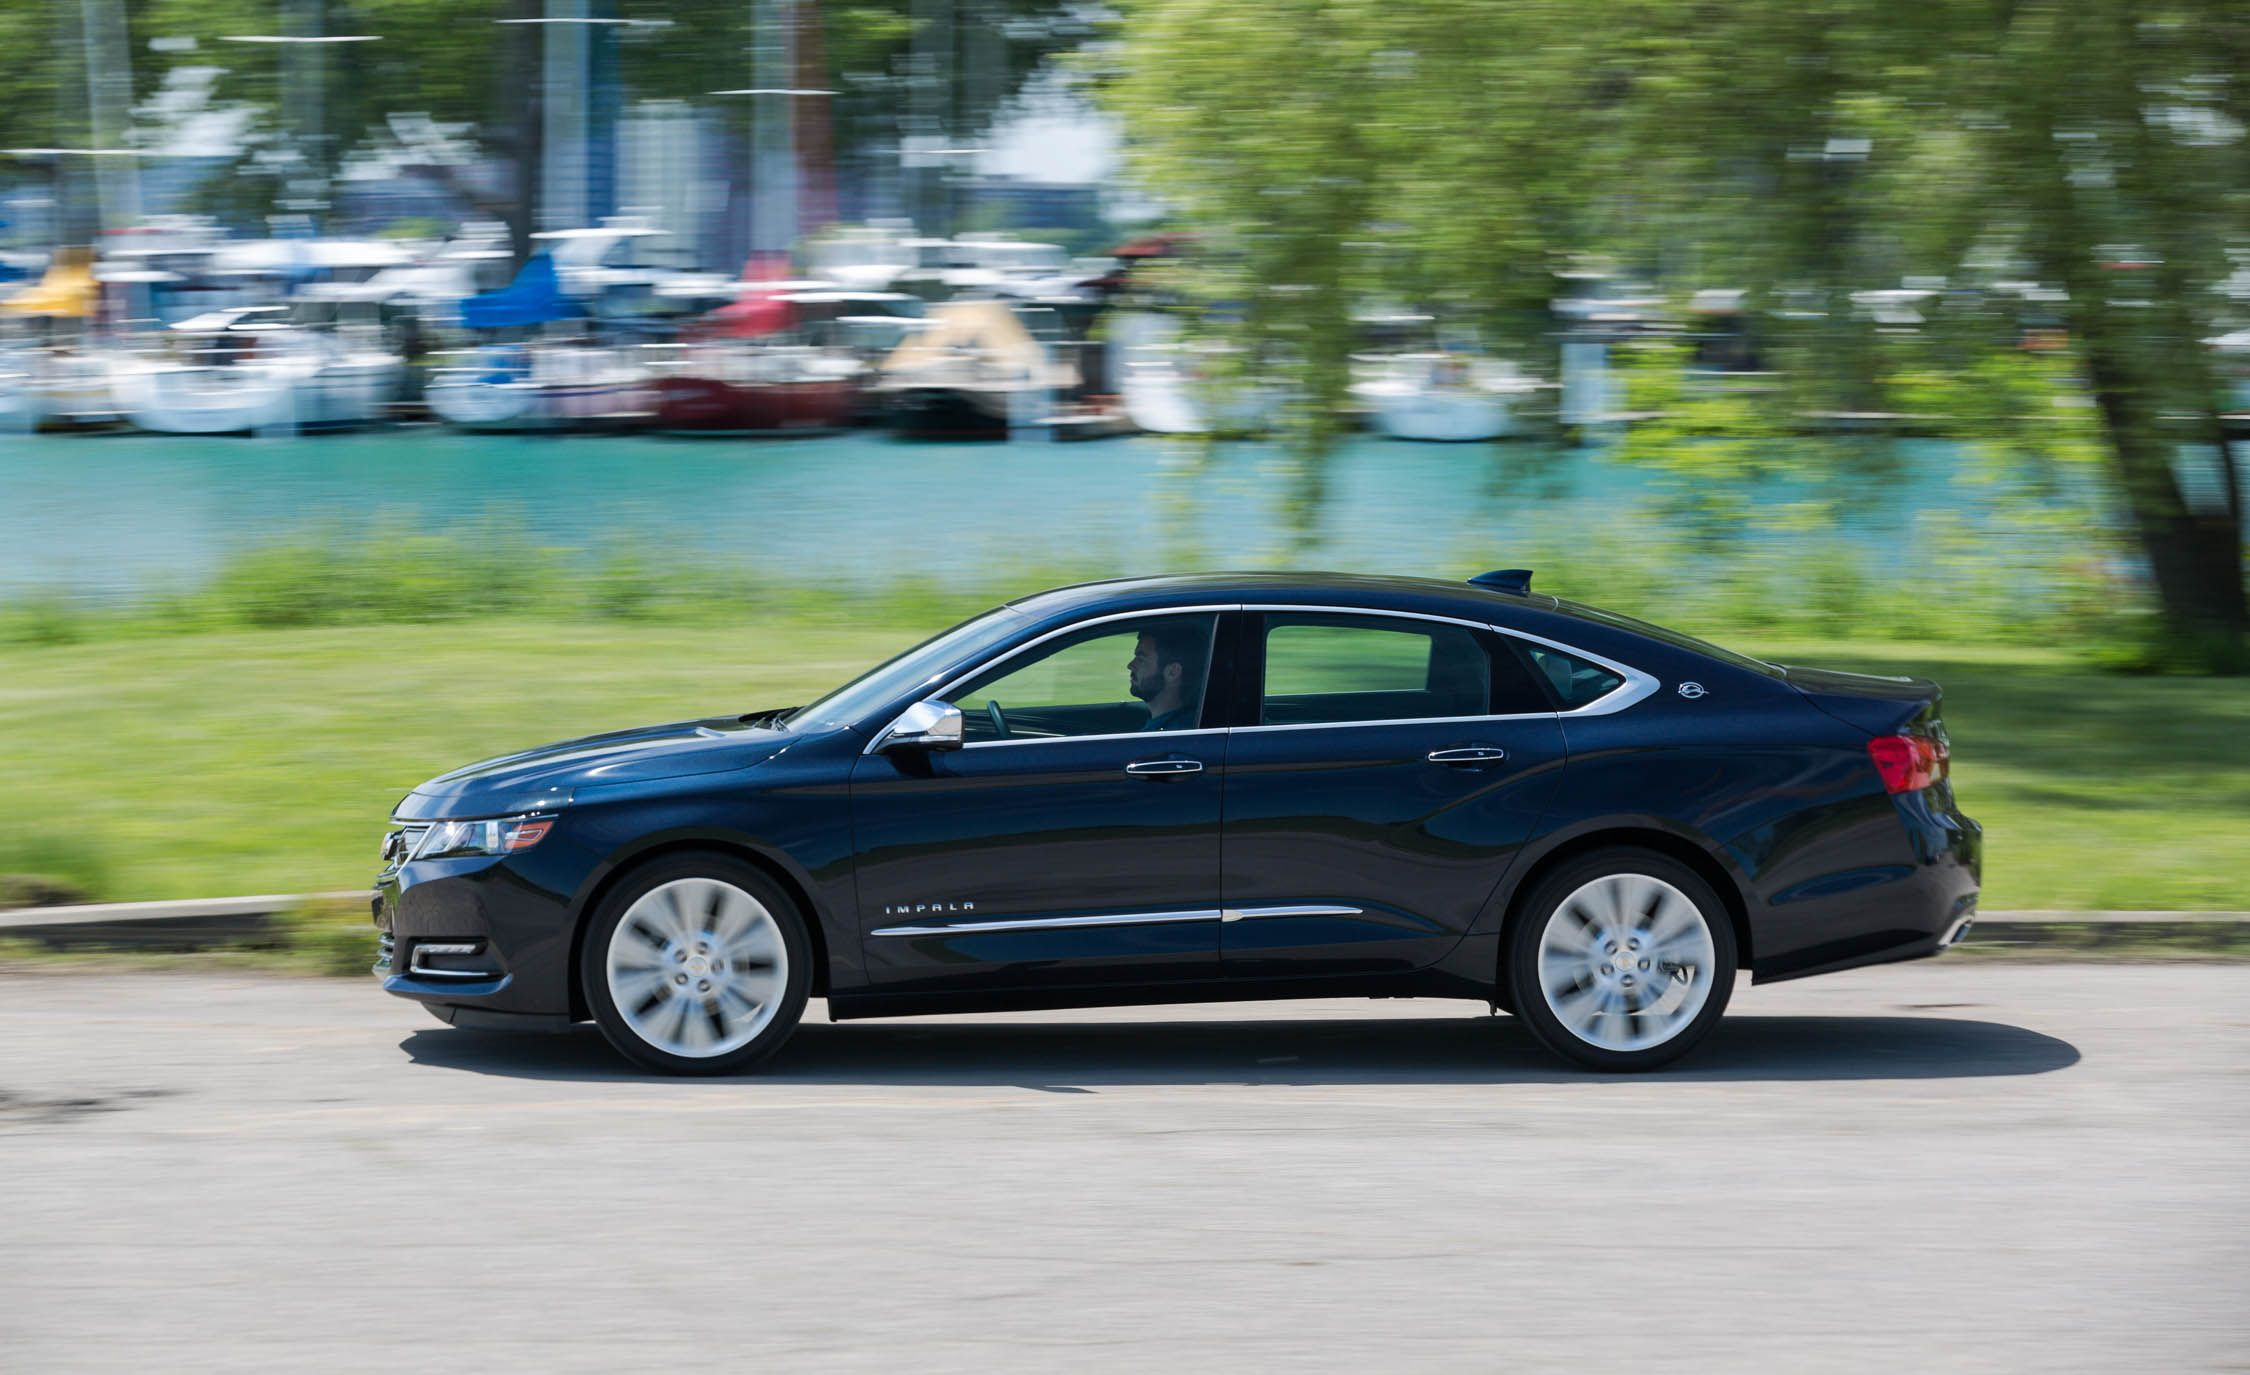 2018 Chevrolet Impala V 6 Tested Why Does It Remind Us Of 1961 Review Car And Driver